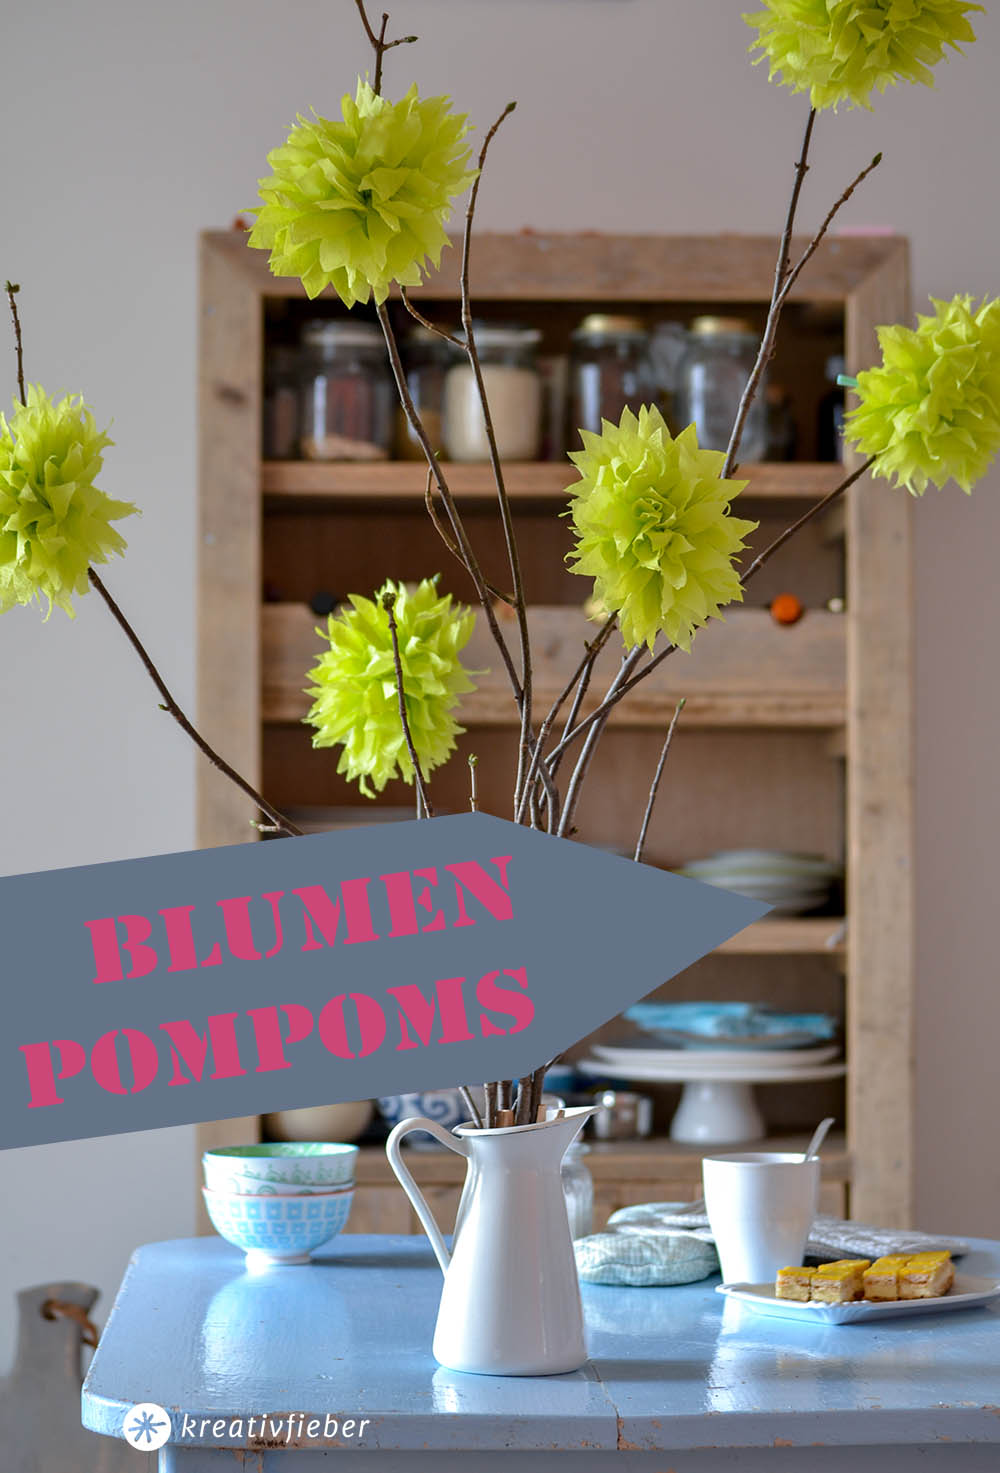 diy blumen pompoms. Black Bedroom Furniture Sets. Home Design Ideas